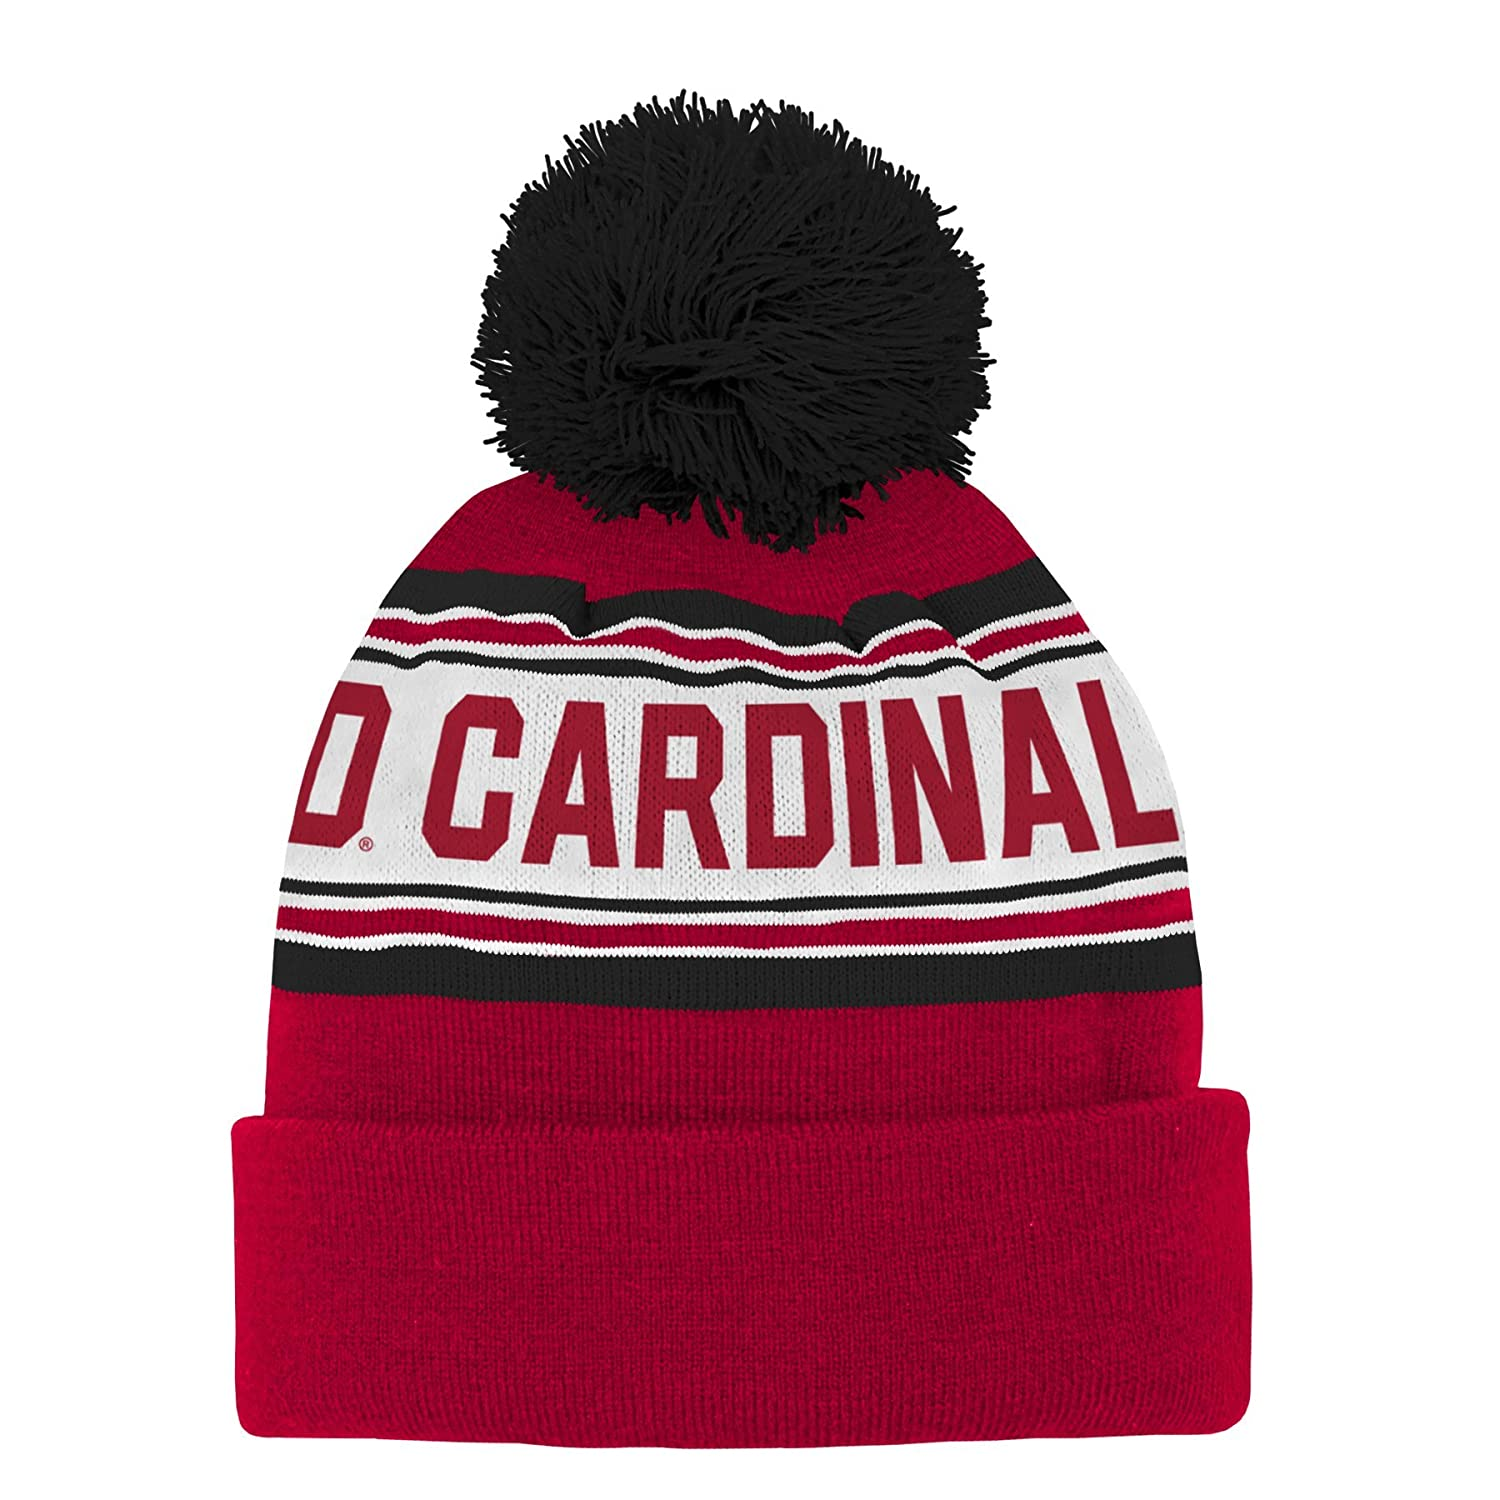 Toddler NCAA Stanford Cardinal Toddler Outerstuff  Jacquard Cuffed Knit Hat with Pom Team Color